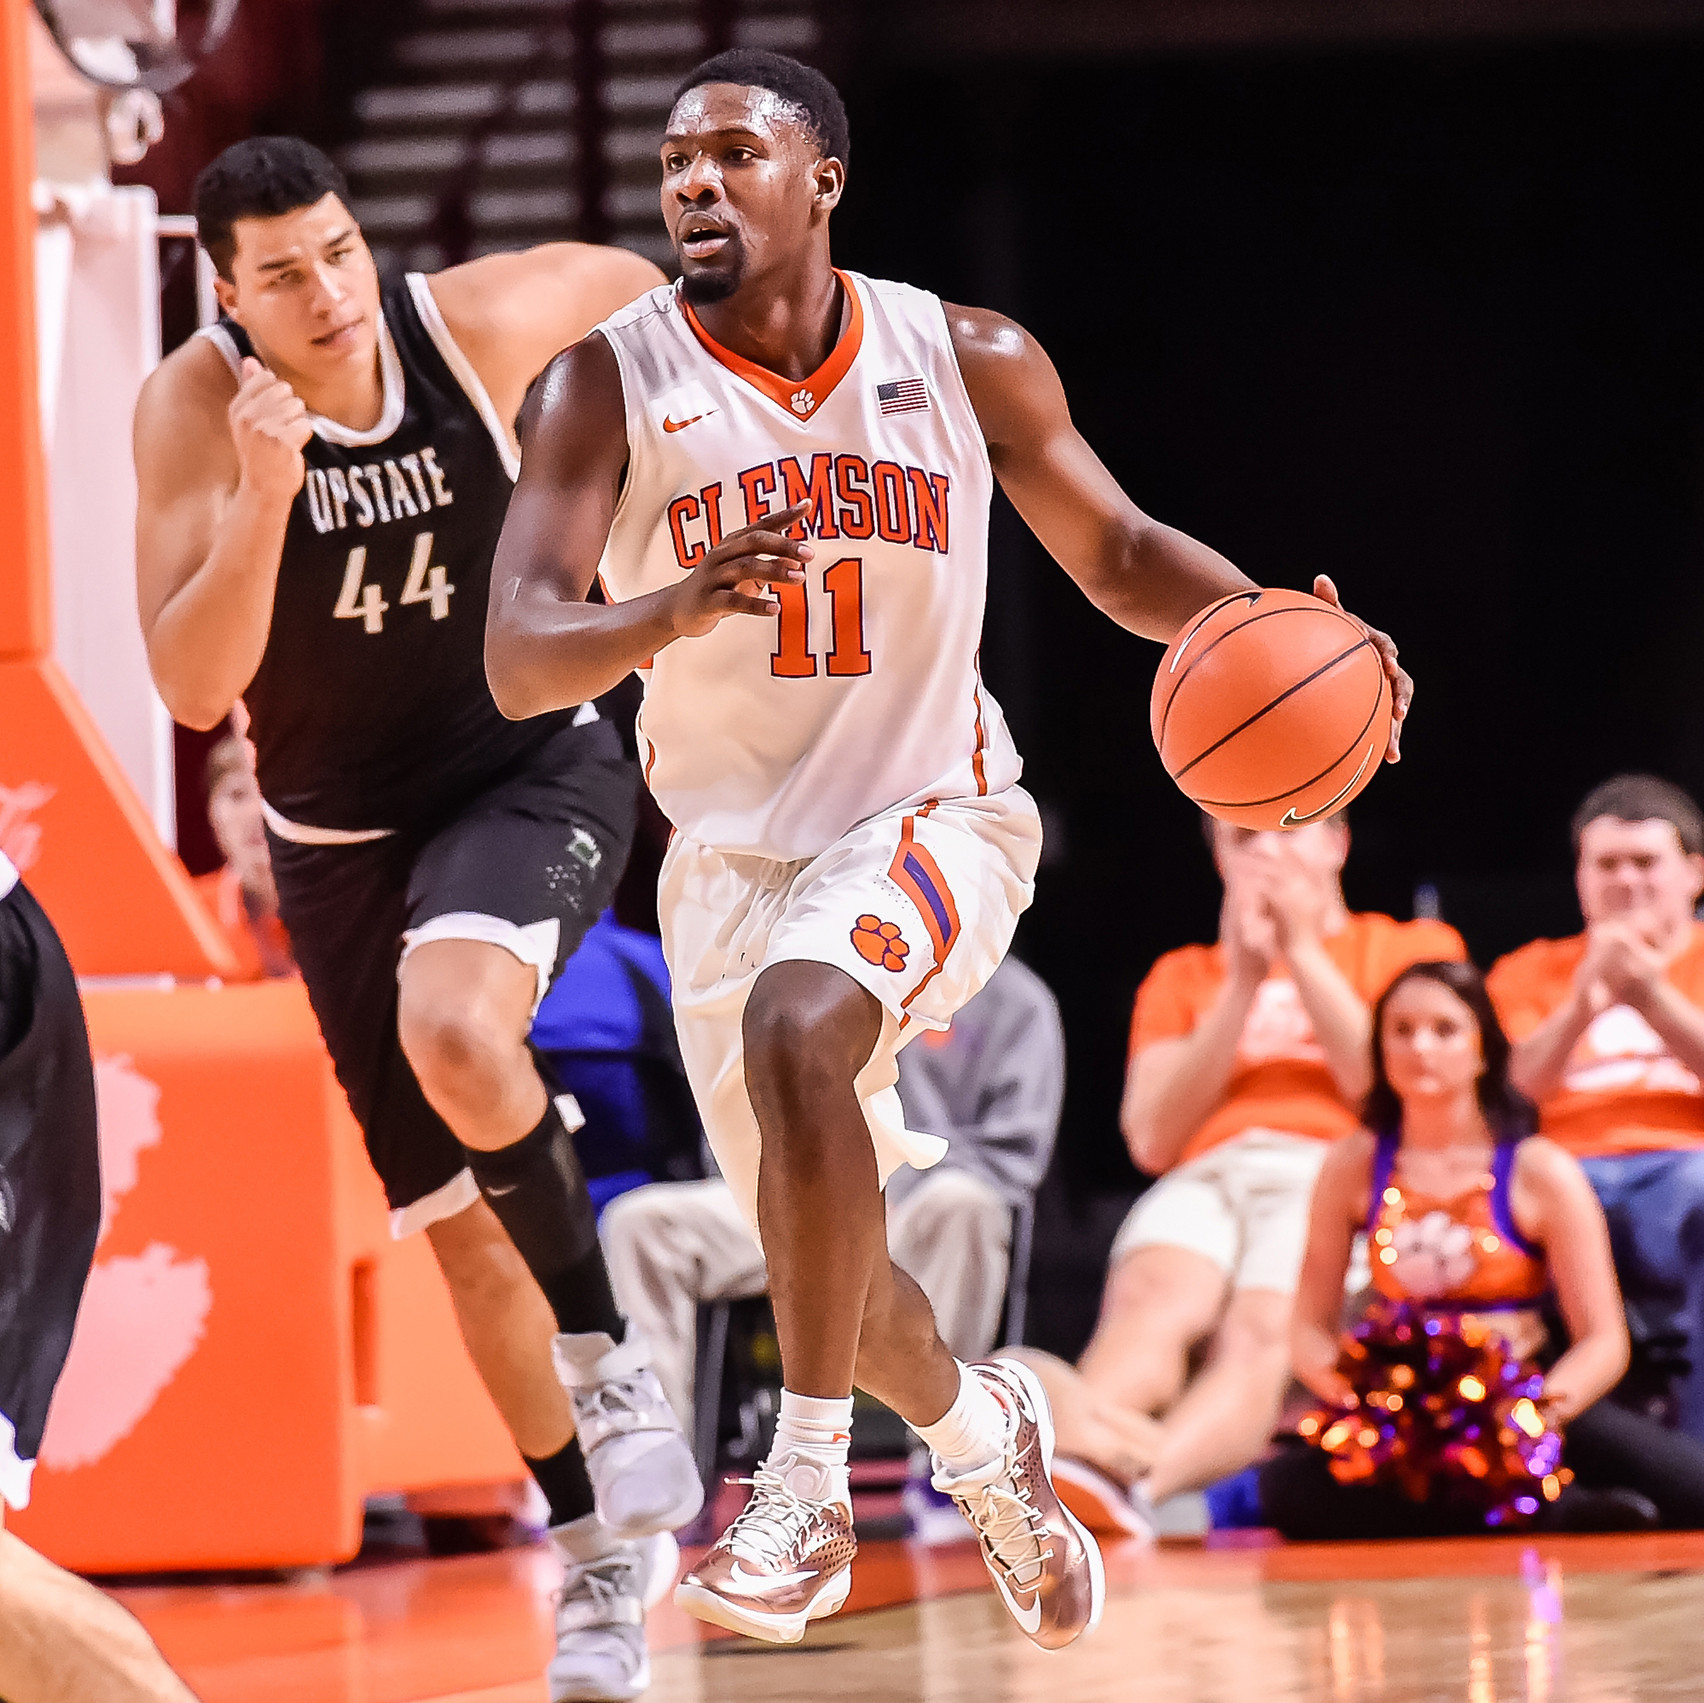 Tigers Host Wofford Sunday